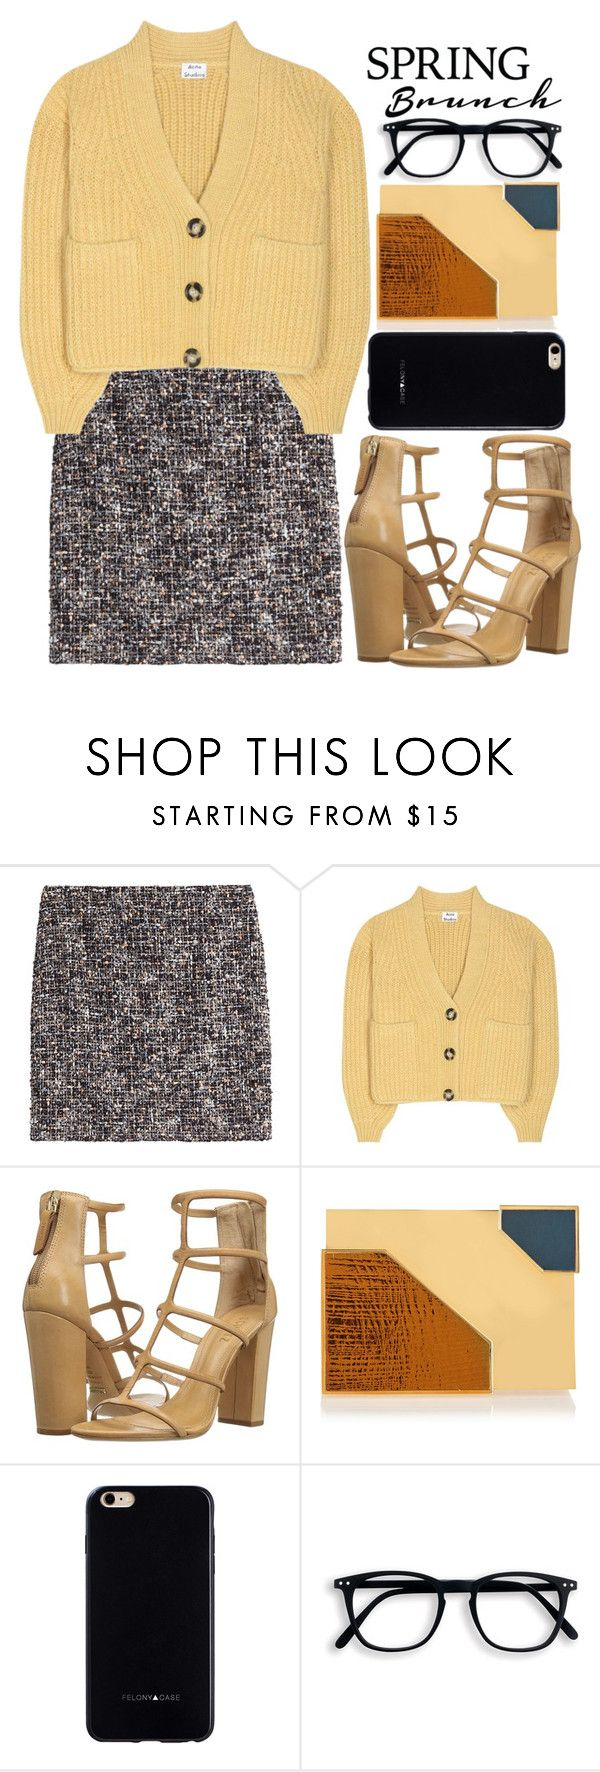 """""""Untitled #1963"""" by fashionista-sweets ❤ liked on Polyvore featuring The Kooples, Acne Studios, Schutz, Lee Savage and Felony Case"""